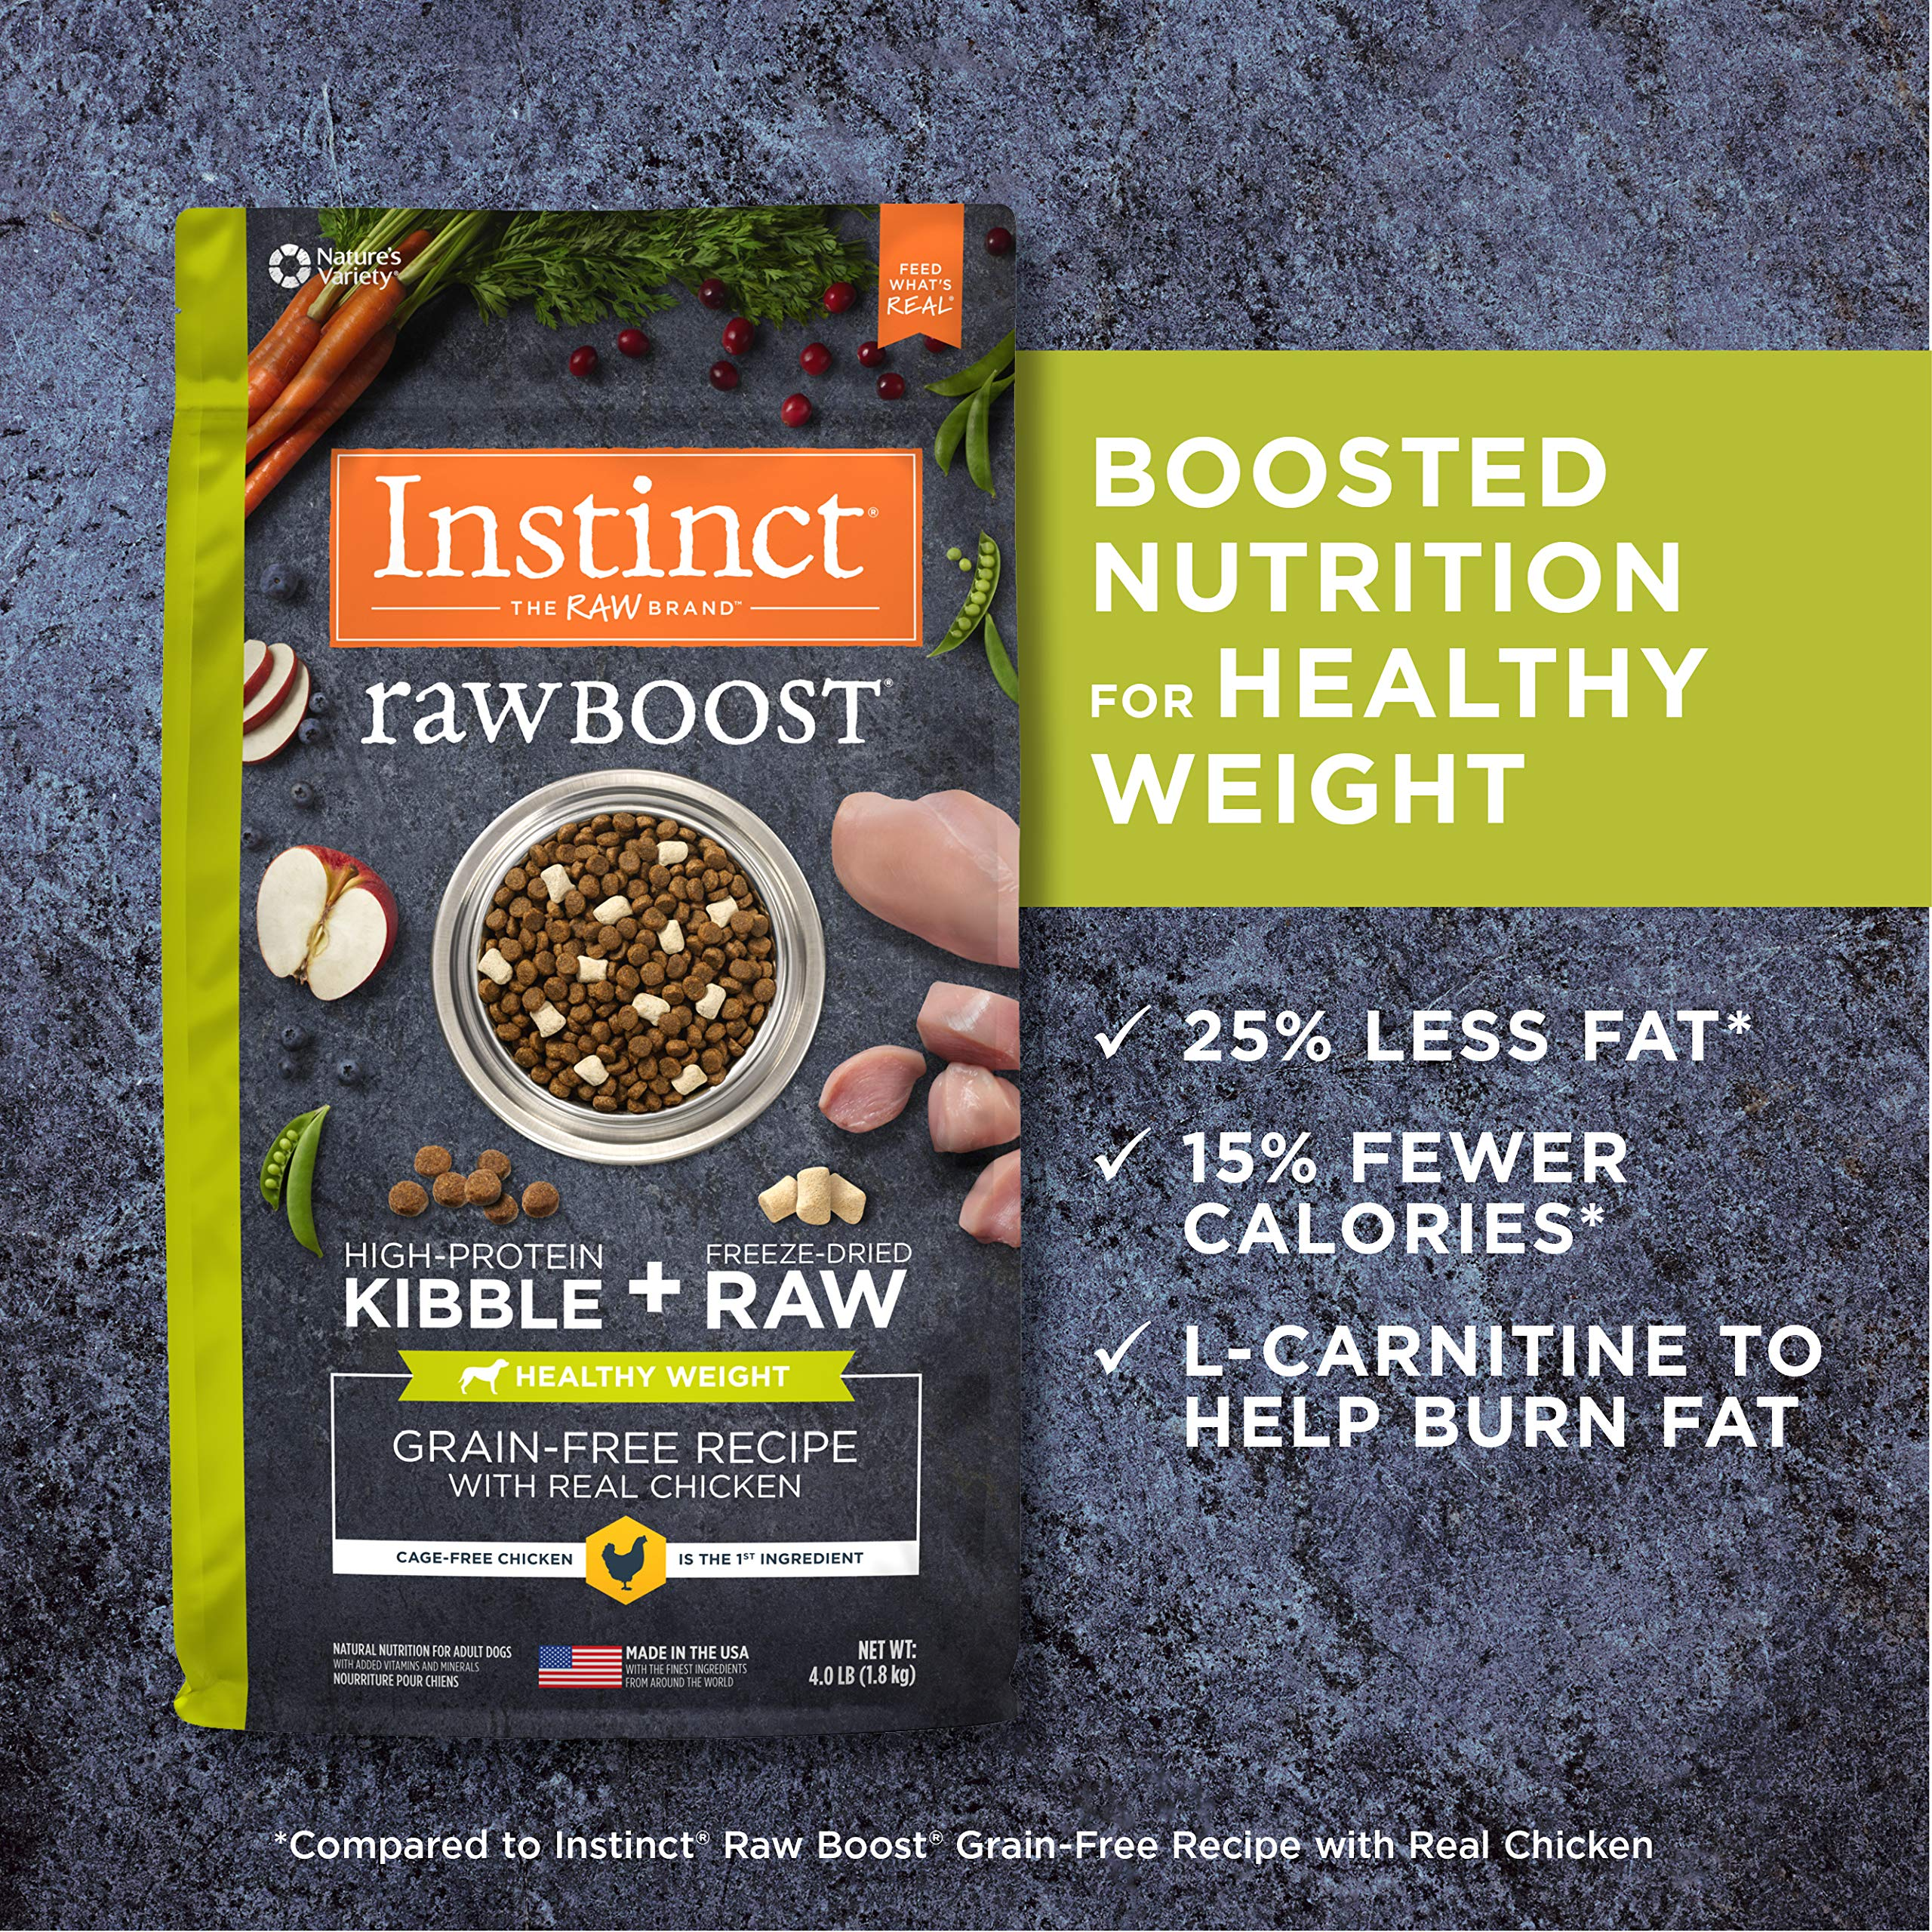 Instinct Raw Boost Healthy Weight Grain Free Recipe with Real Chicken Natural Dry Dog Food by Nature's Variety, 20 lb. Bag by Instinct (Image #6)